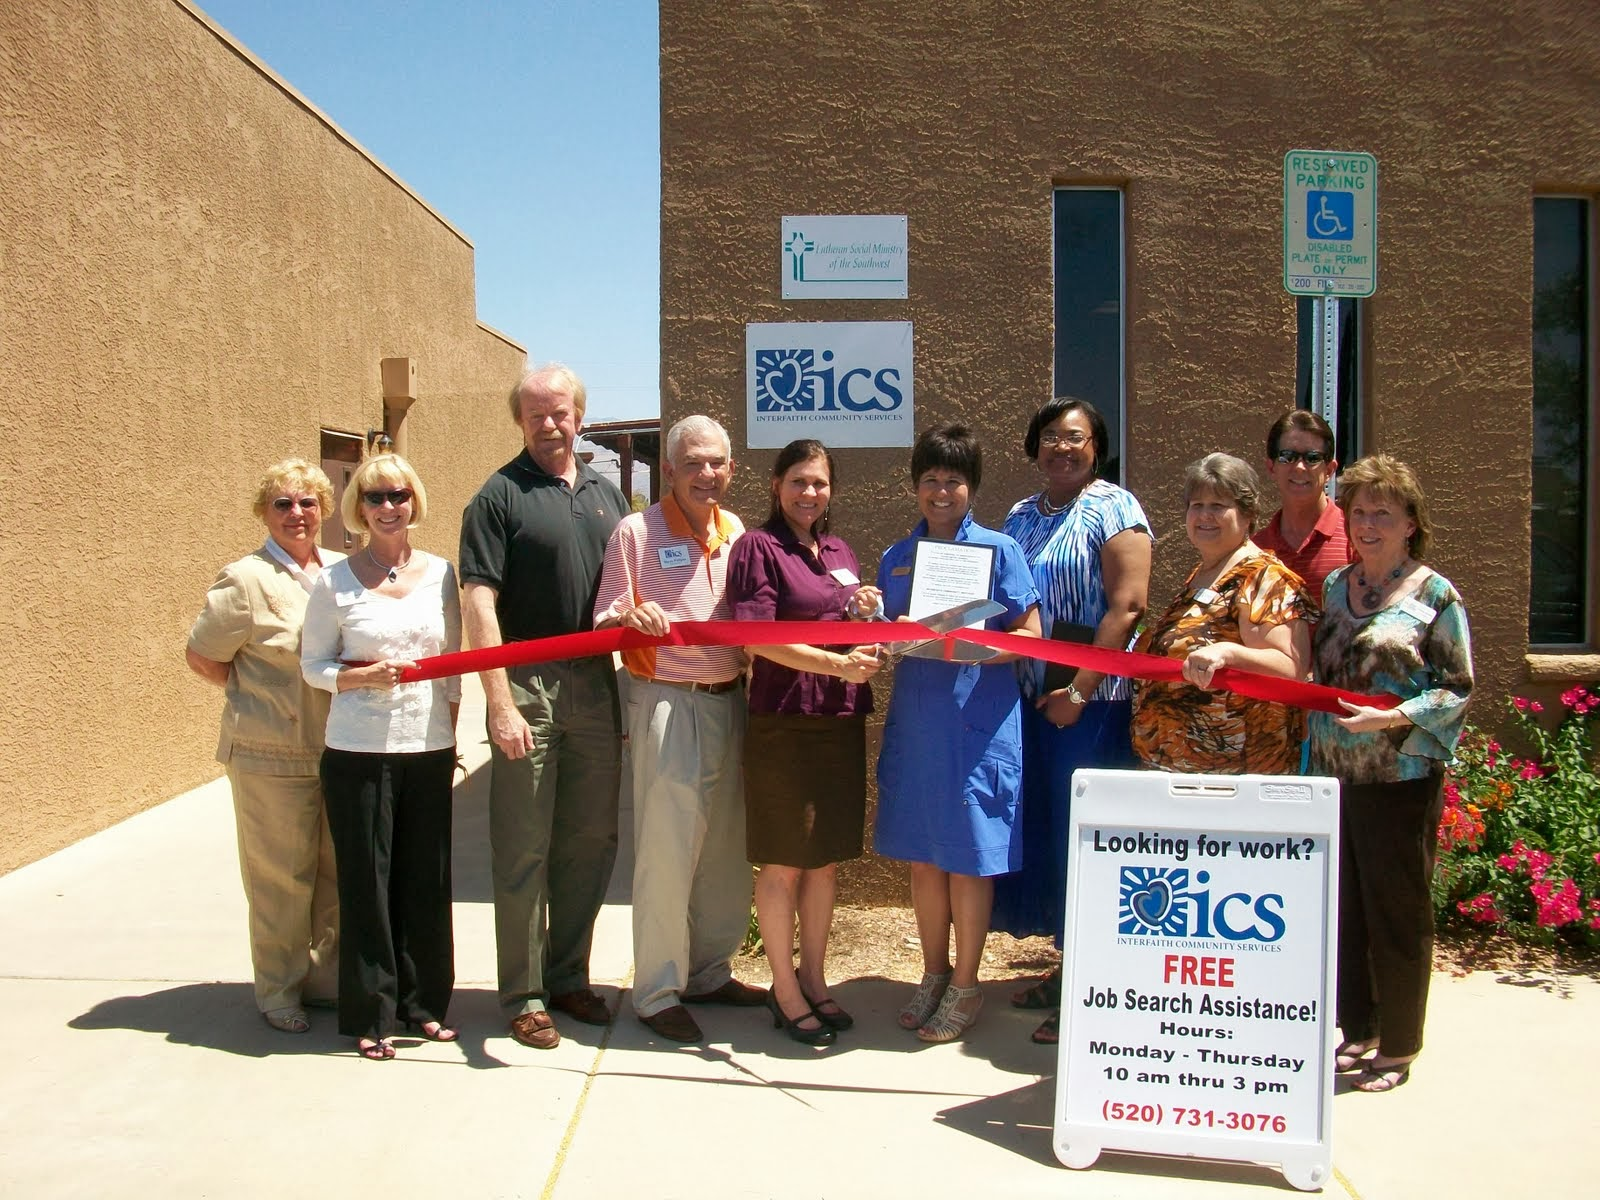 Interfaith Community Services, a non-profit organization serving seniors, individuals with disabilities and people in financial crisis, celebrates the grand opening of its new ICS Employment Resource Center and newly expanded Eastside Tucson office with a reception and open house.